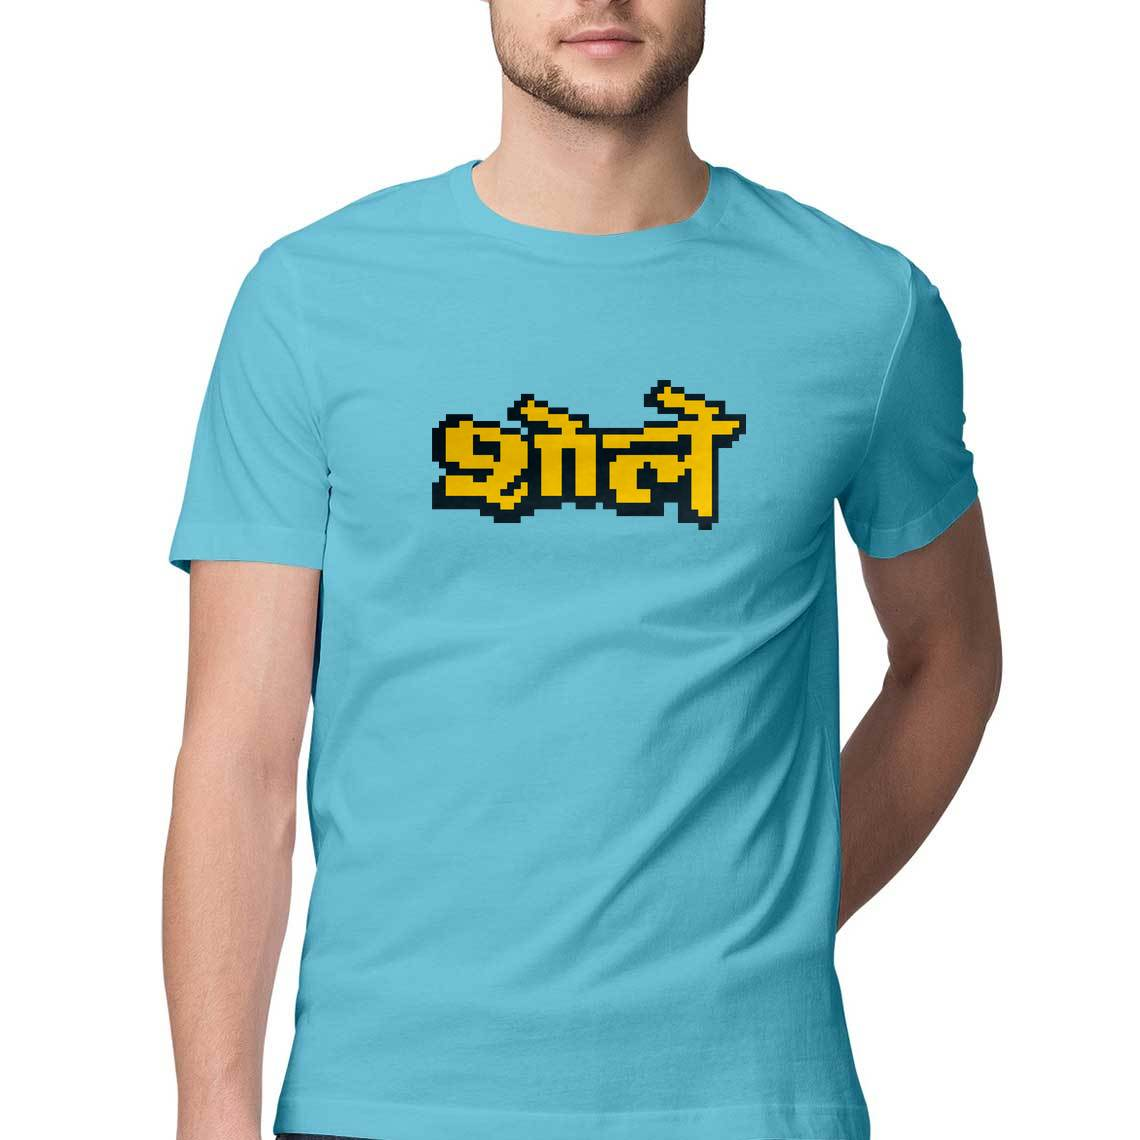 Sholay 8 Bit Pixal Art Men's Half Sleeve Cotton T-Shirt